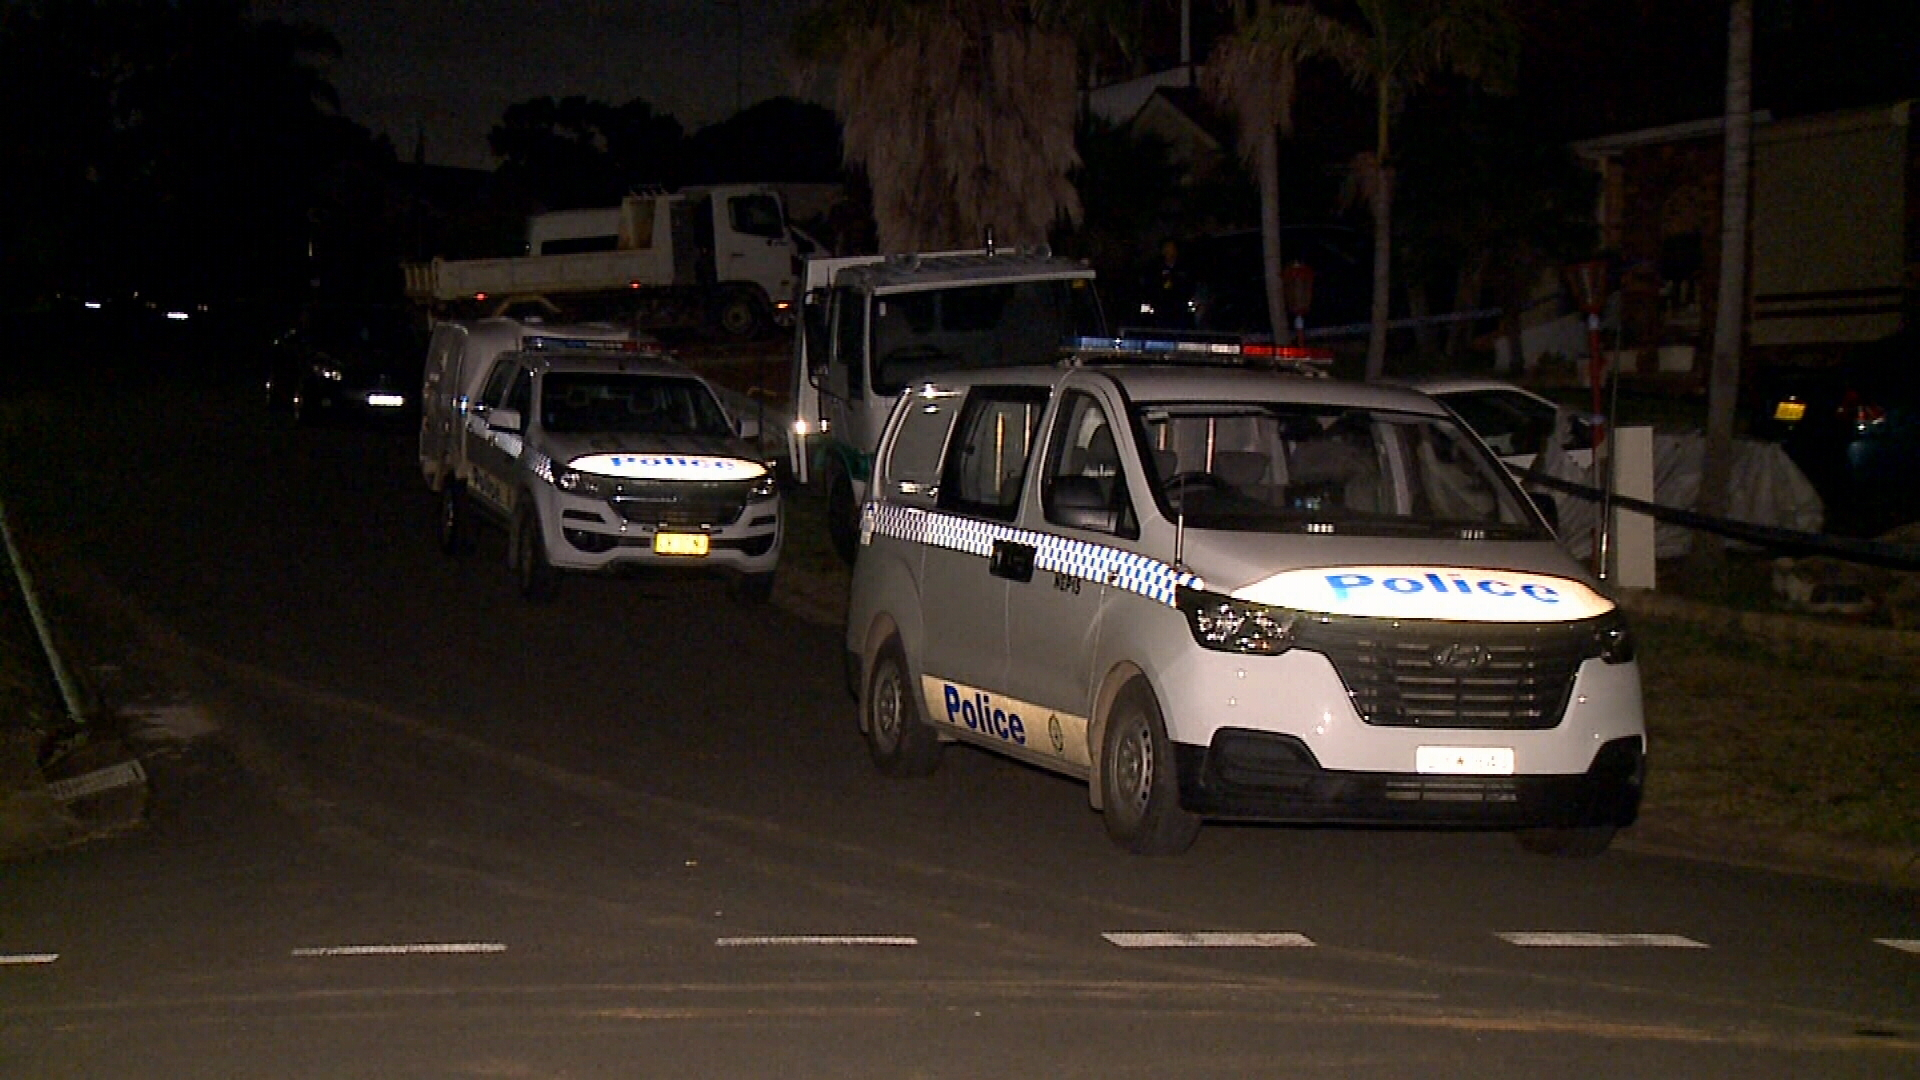 Police and paramedics attended and found a 39-year-old man suffering multiple stab wounds to his torso, arms and legs.